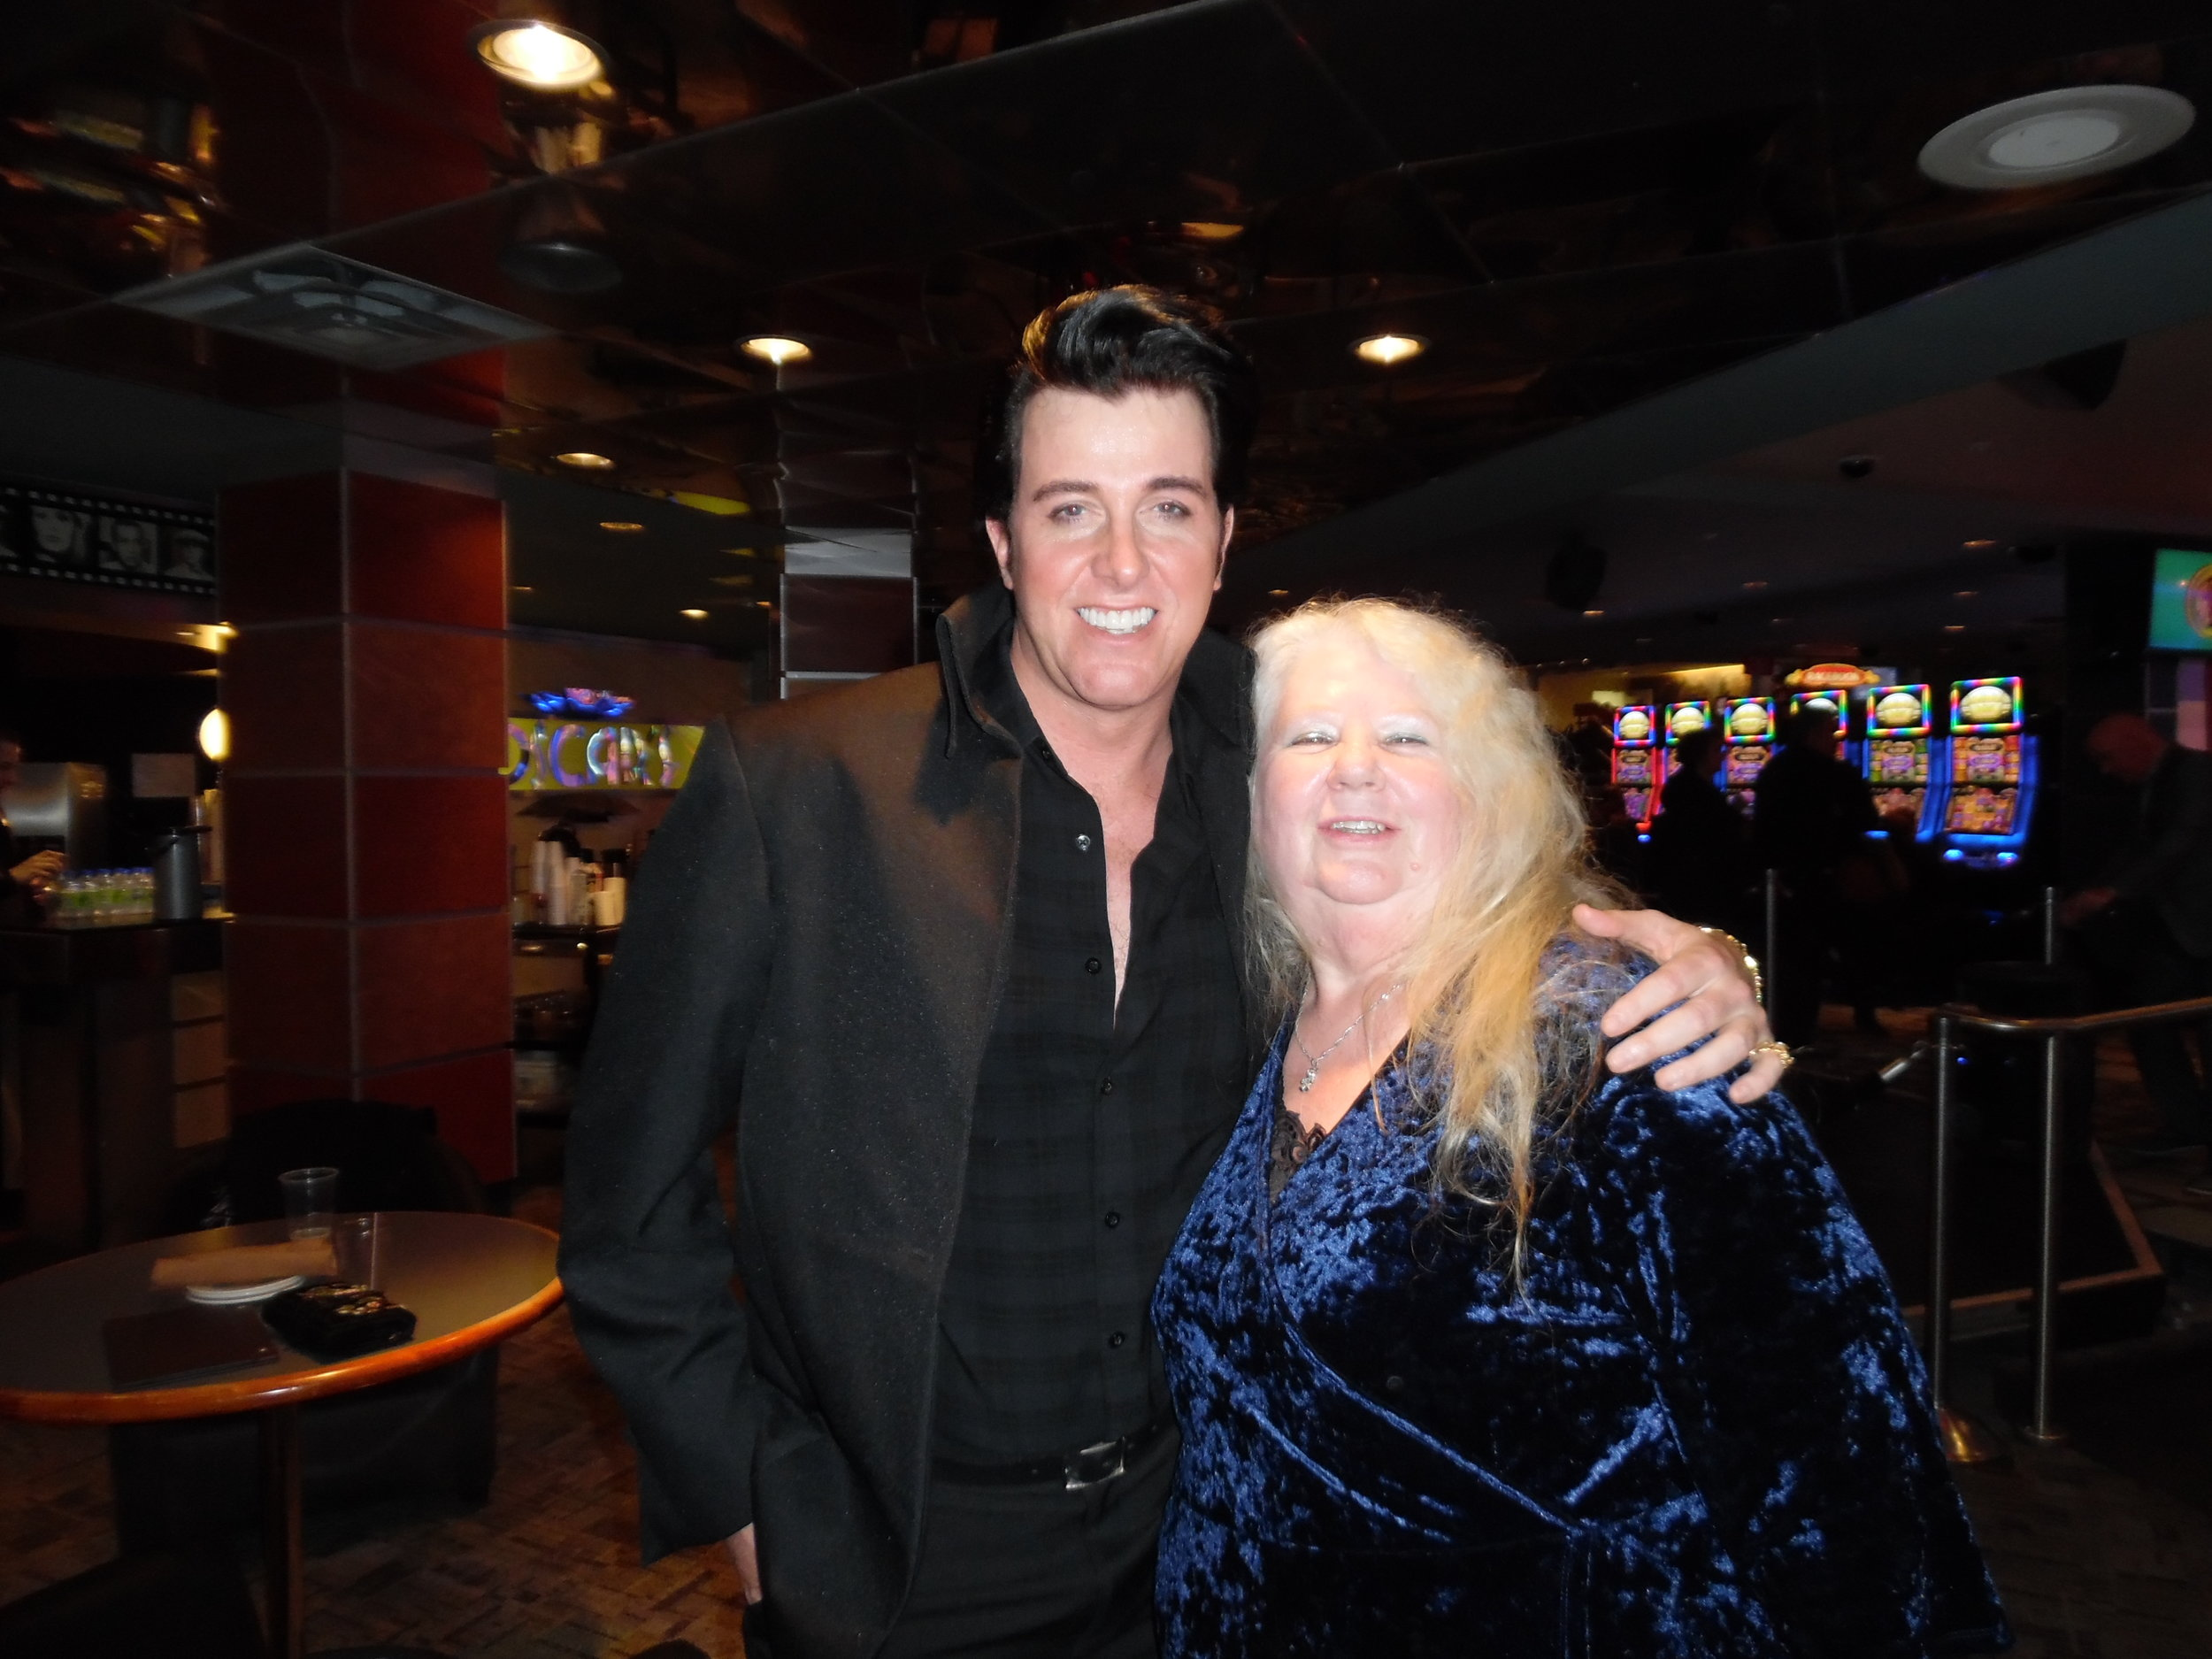 ETA  Matt Cage  and fan, Dot Farr, pose for a photo after Matt's fantastic concert at Mohawk Raceway on November 17th, 2017.